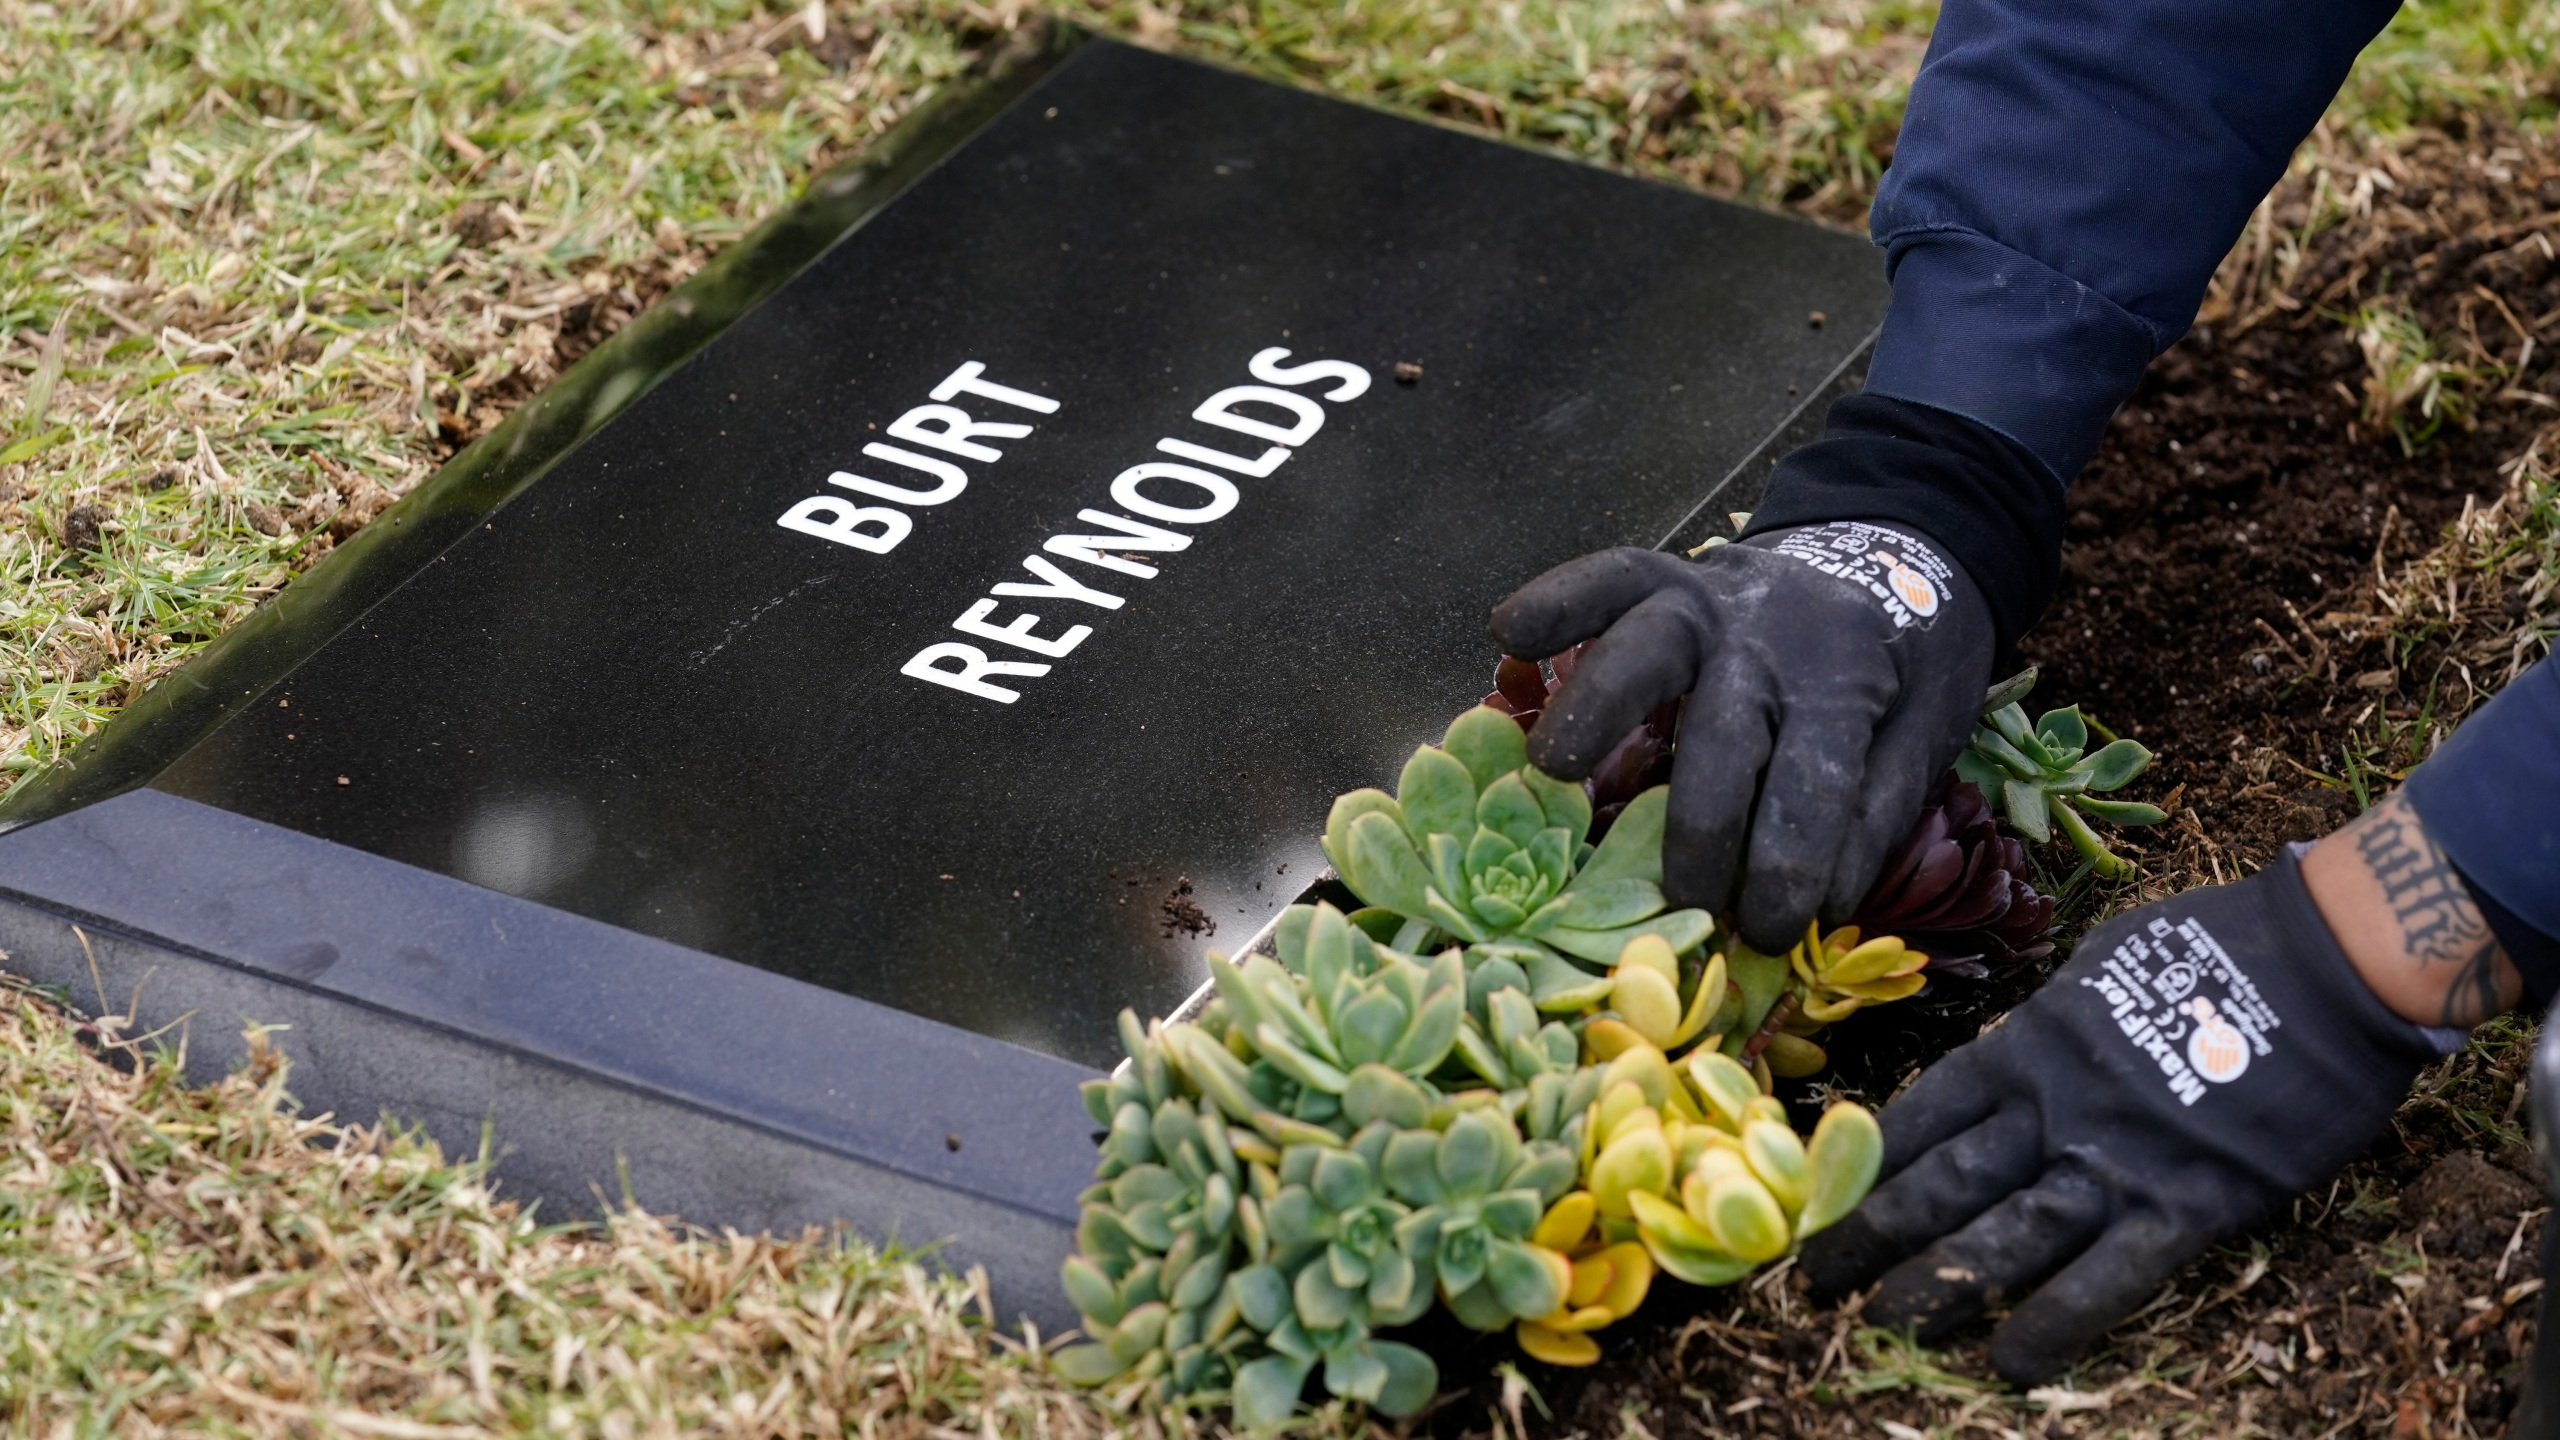 Flowers are placed in front of a temporary headstone for the late actor Burt Reynolds in the Garden of Legends section of Hollywood Forever cemetery, on Feb. 11, 2021. (Chris Pizzello/Associated Press)